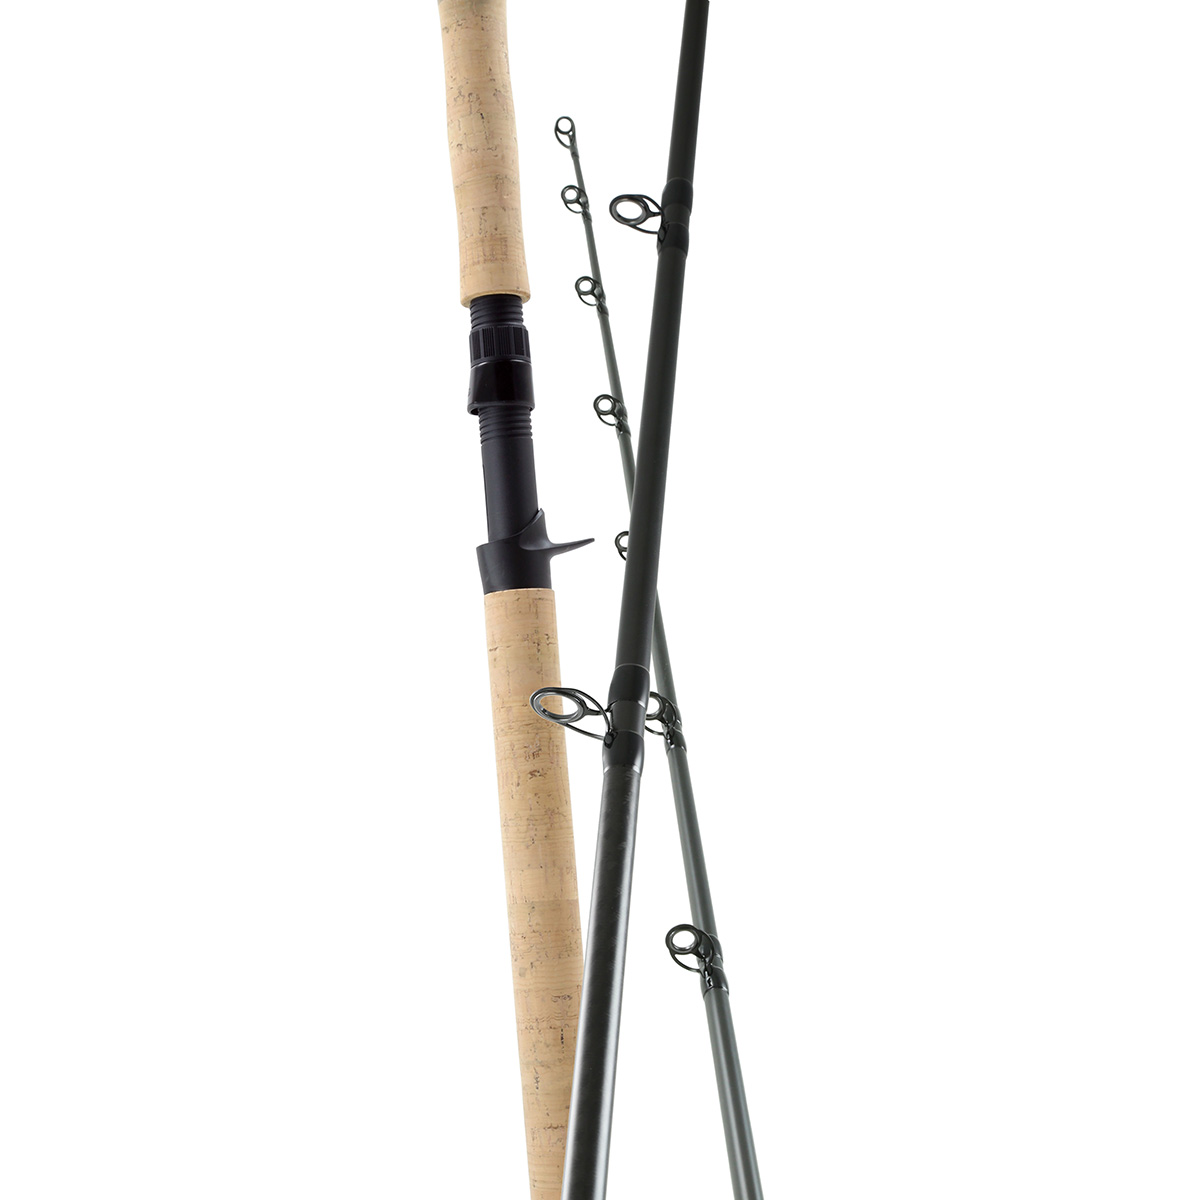 EVX Musky Rod - Okuma EVX Musky Rod-Responsive and durable 24-ton carbon rod blanks-UFR:Unidirectional Fiber Reinforced rod tip technology increases rod tip lifting power by 3 times